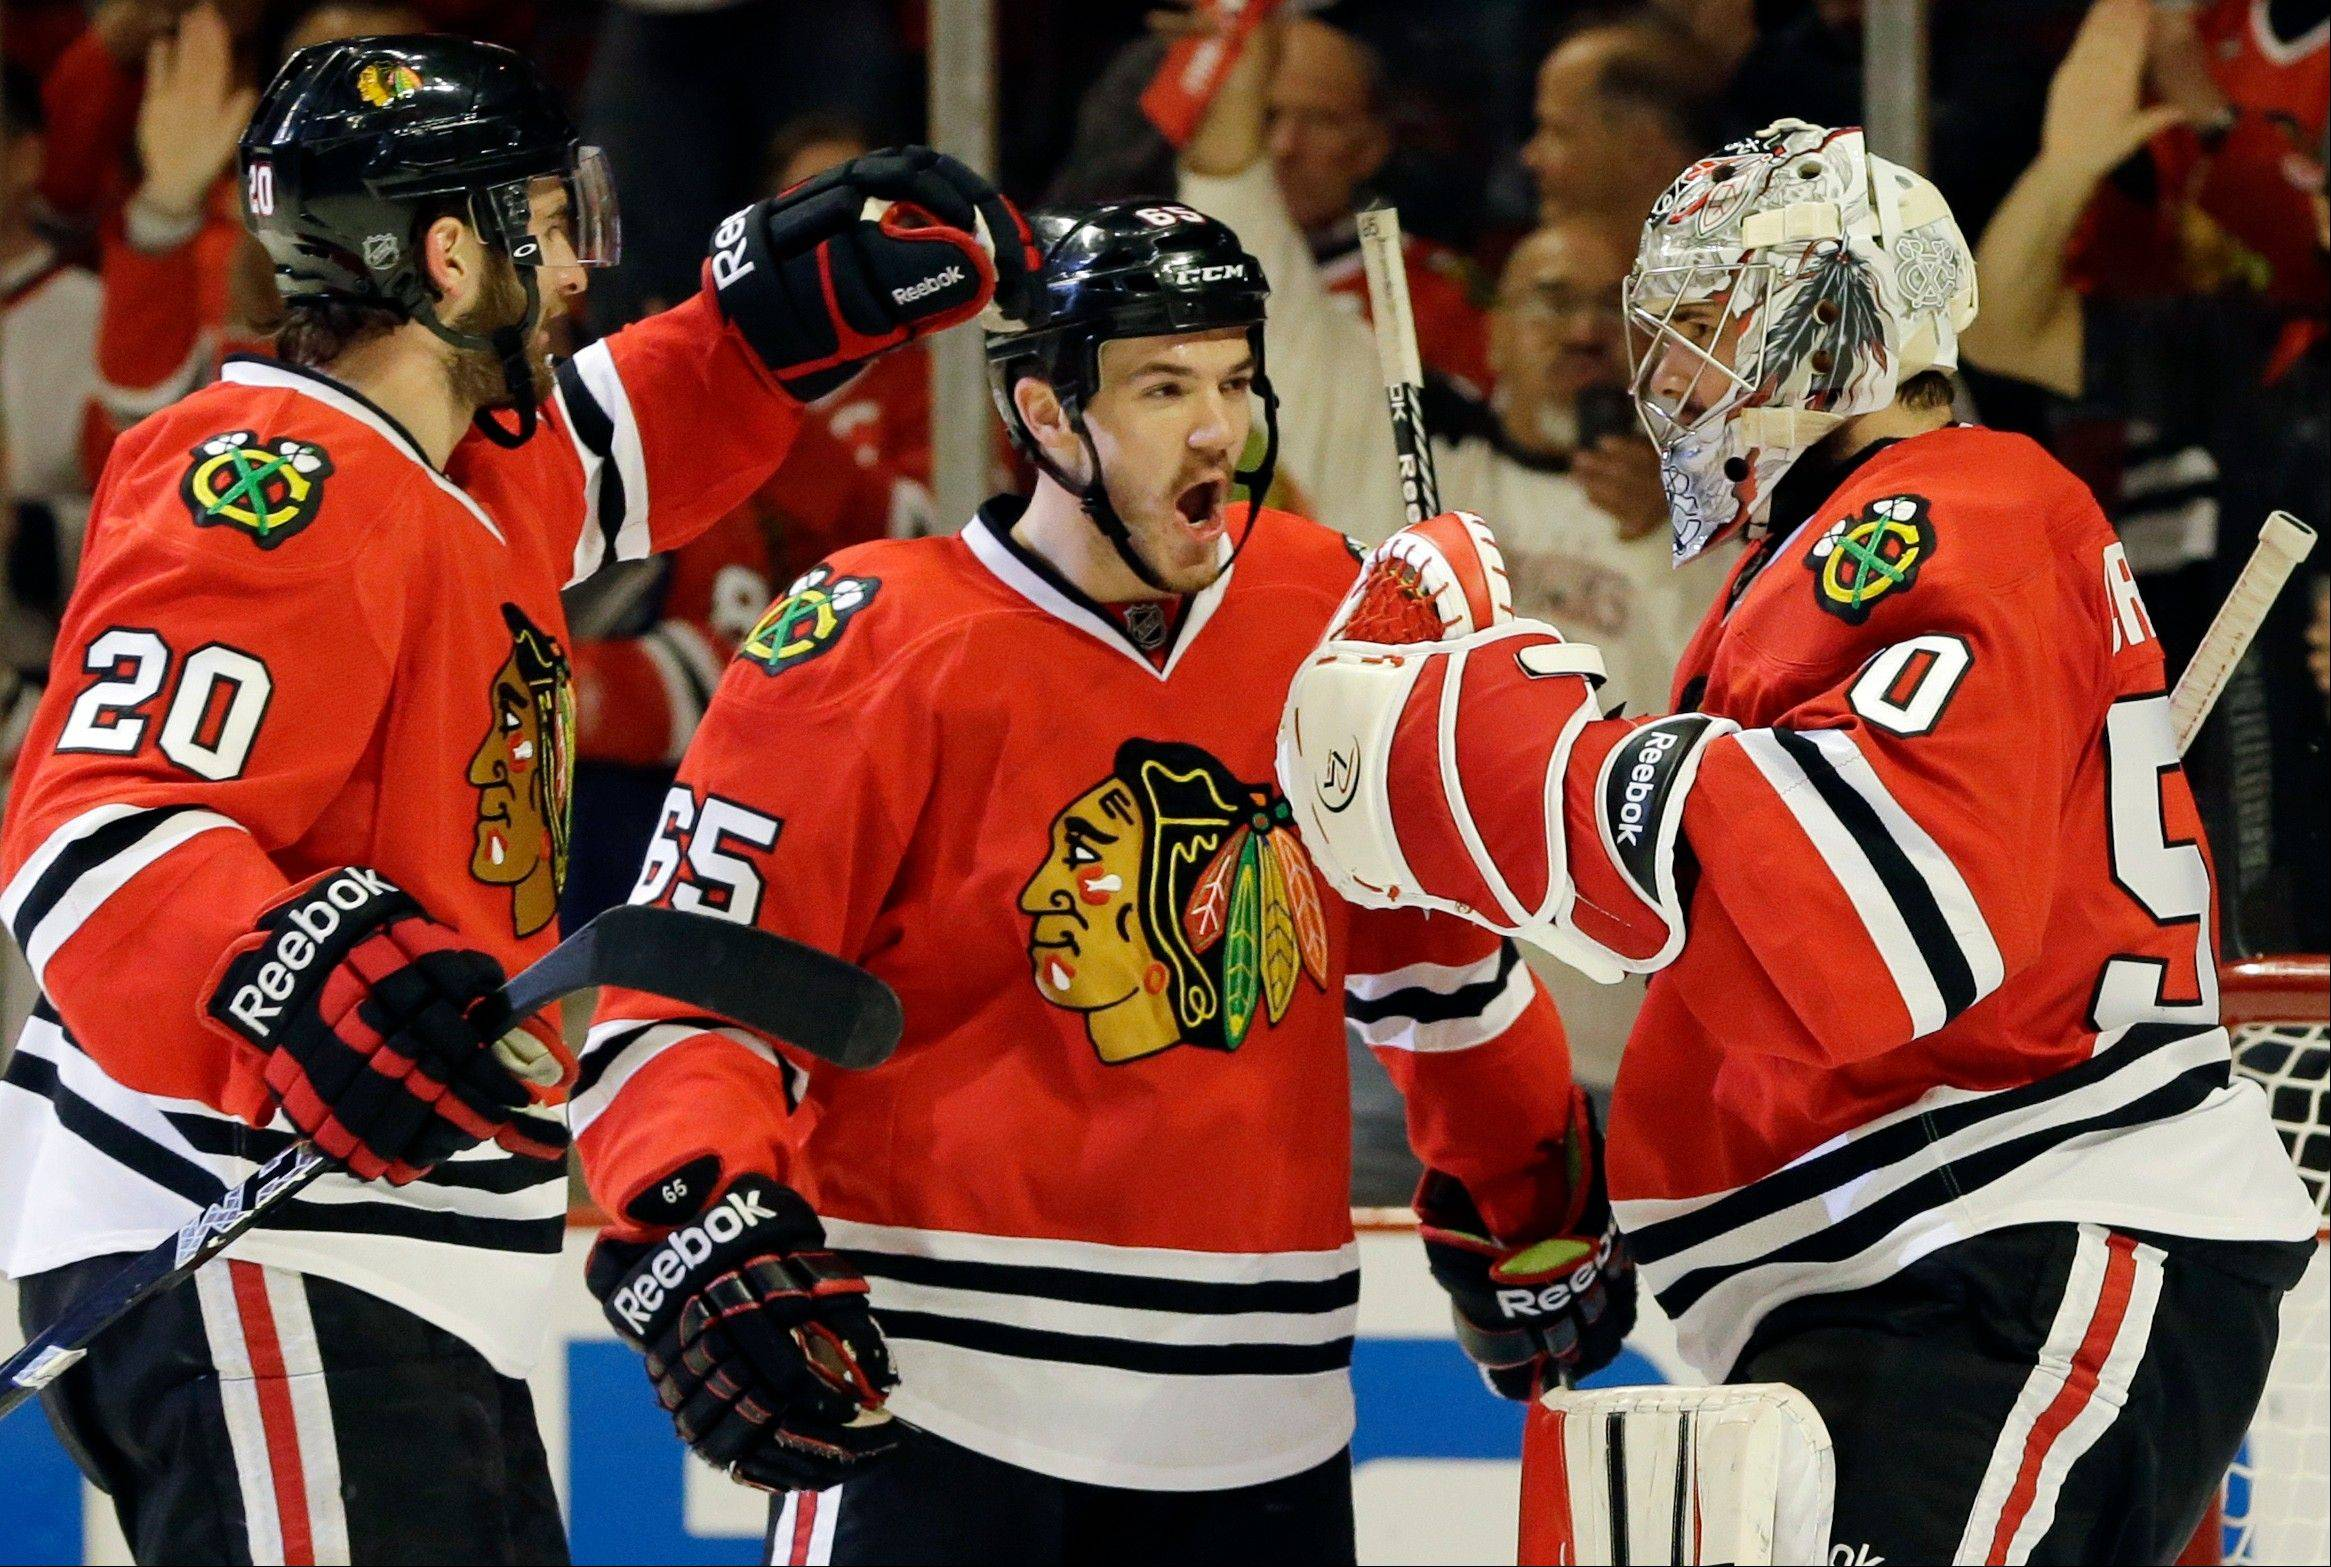 Hawks turn on the power in Game 5